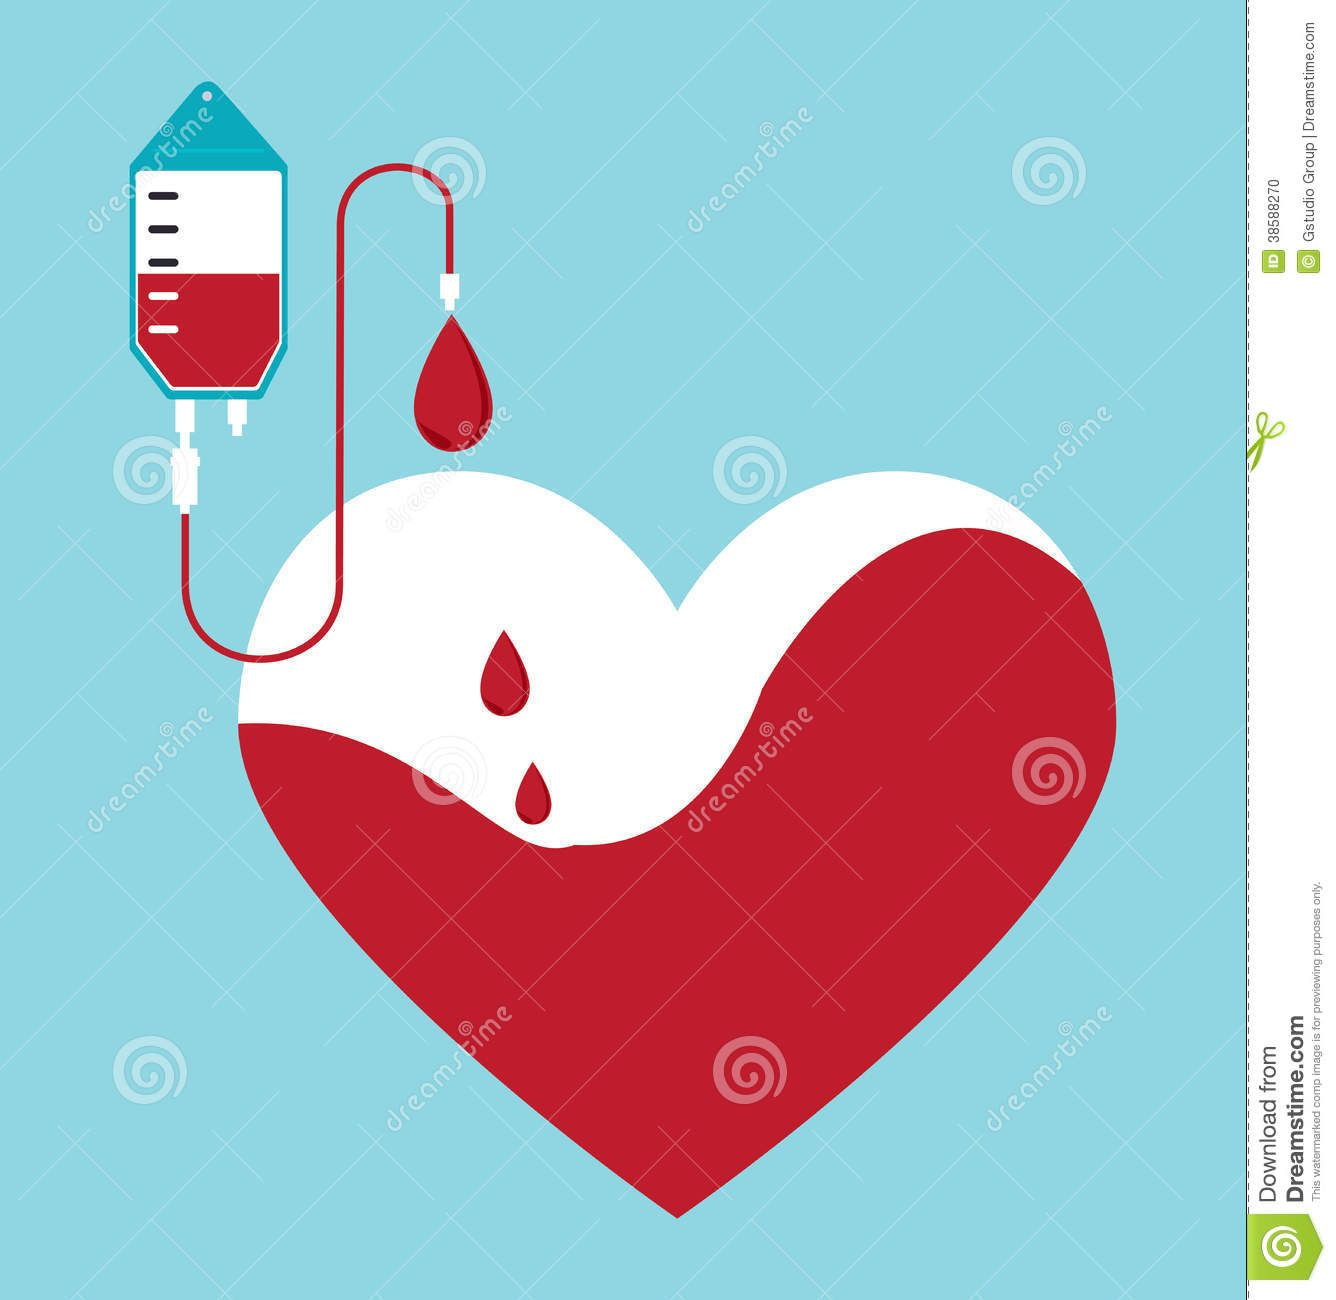 donating blood posters posters on blood donation clipart clipart email [ 1336 x 1300 Pixel ]